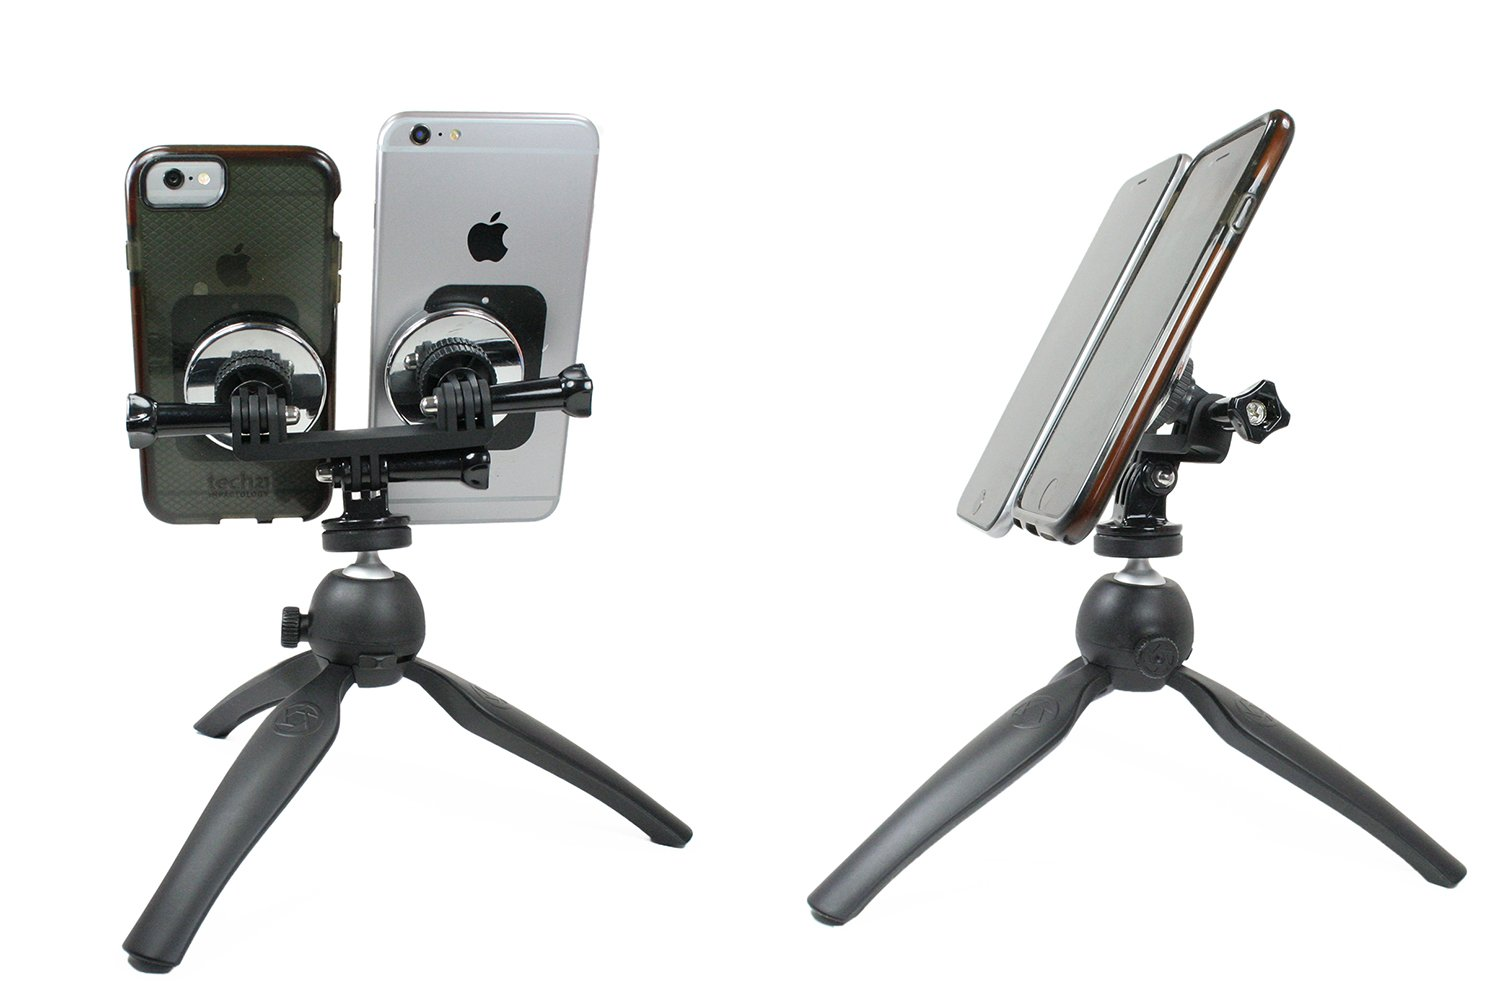 Livestream Gear to Fit Large Sized Devices Like iPhone 6 Plus Dual Phablet Tripod Setup for Live Stream or YouTube White Dual Tripod or Galaxy Note Also Works with Sport Cameras.